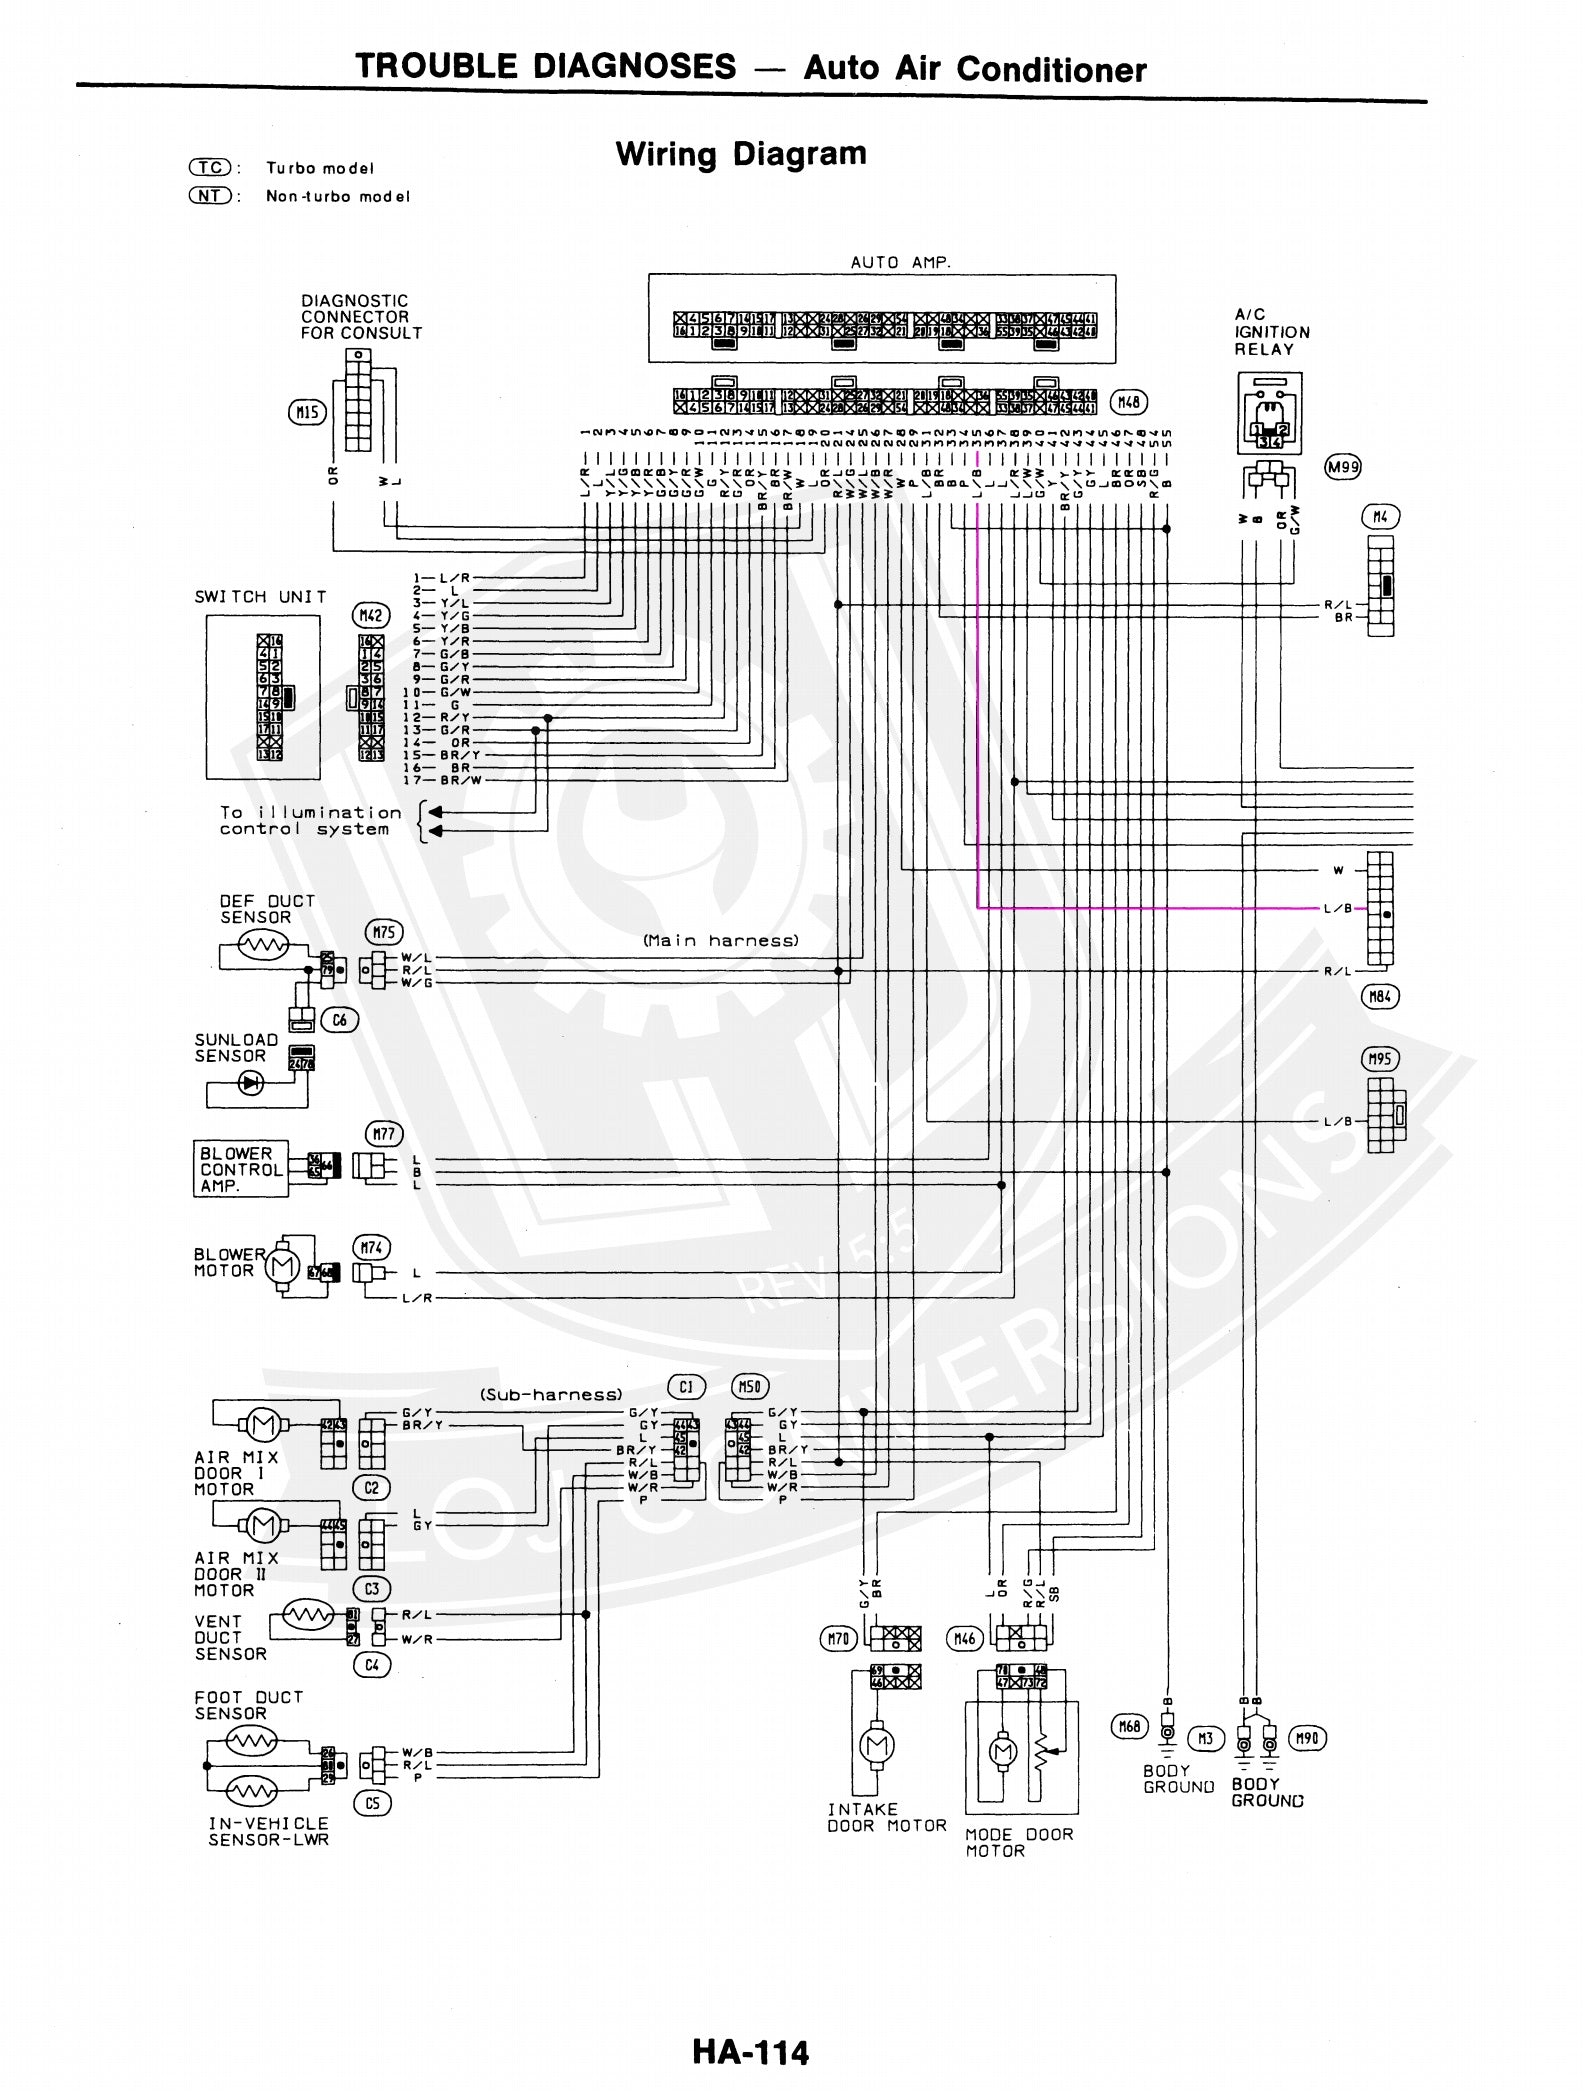 1984 300zx Wiring Harness Everything Wiring Diagram